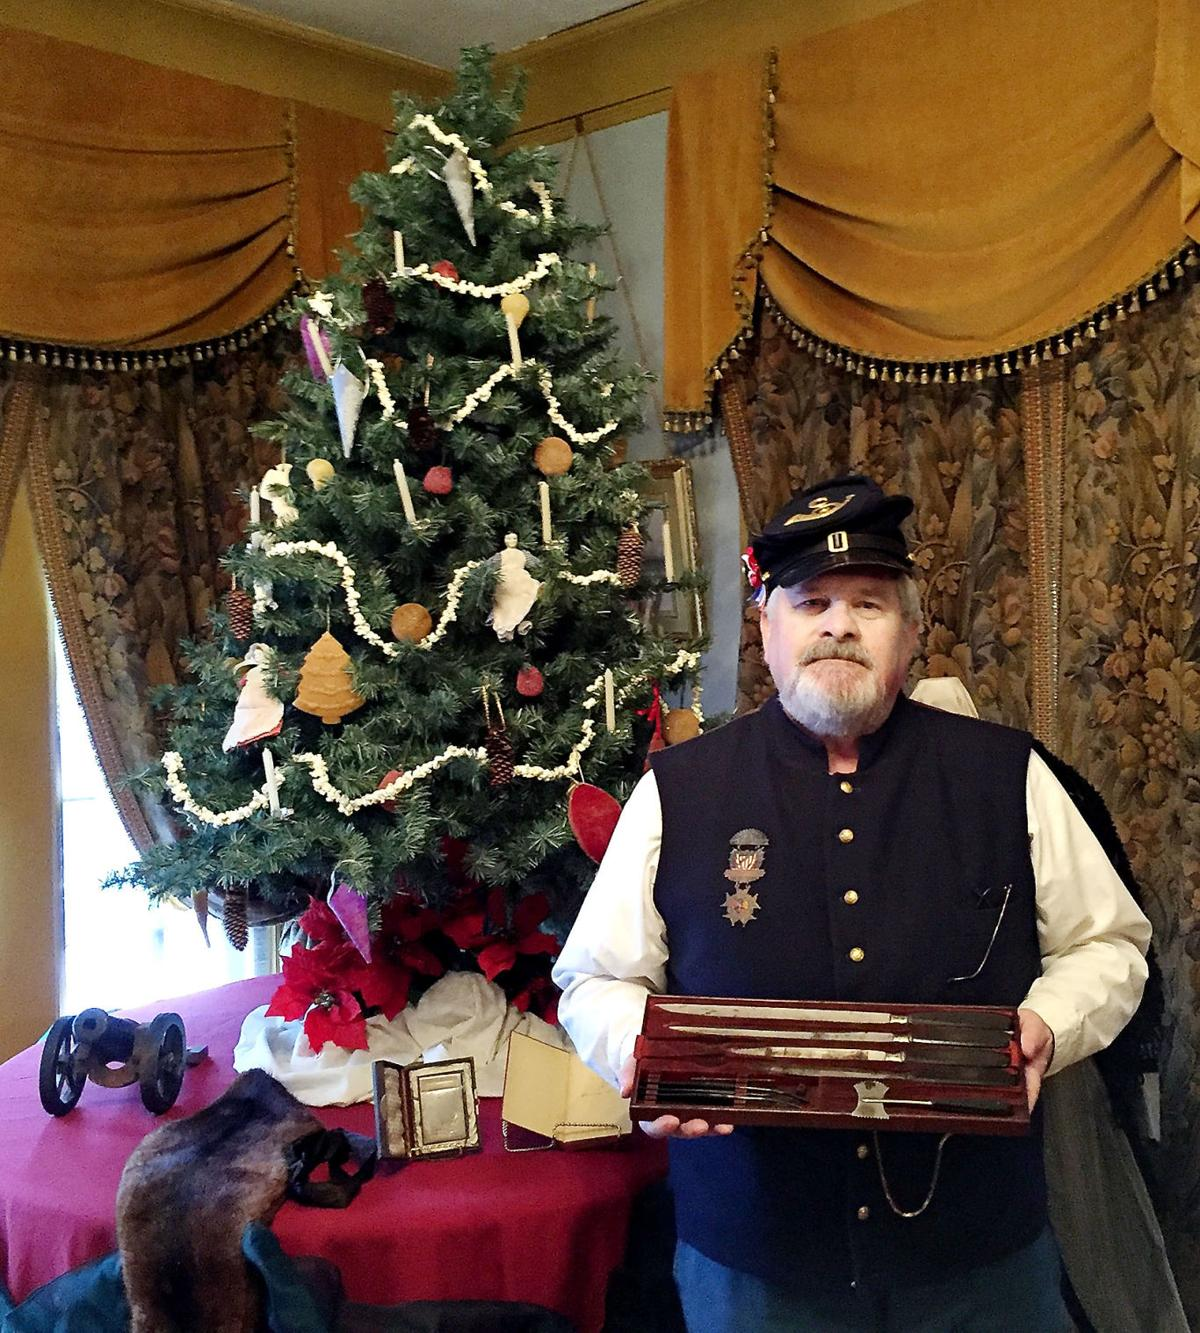 Wilson Place showcases what holidays would have been like during Civil War era